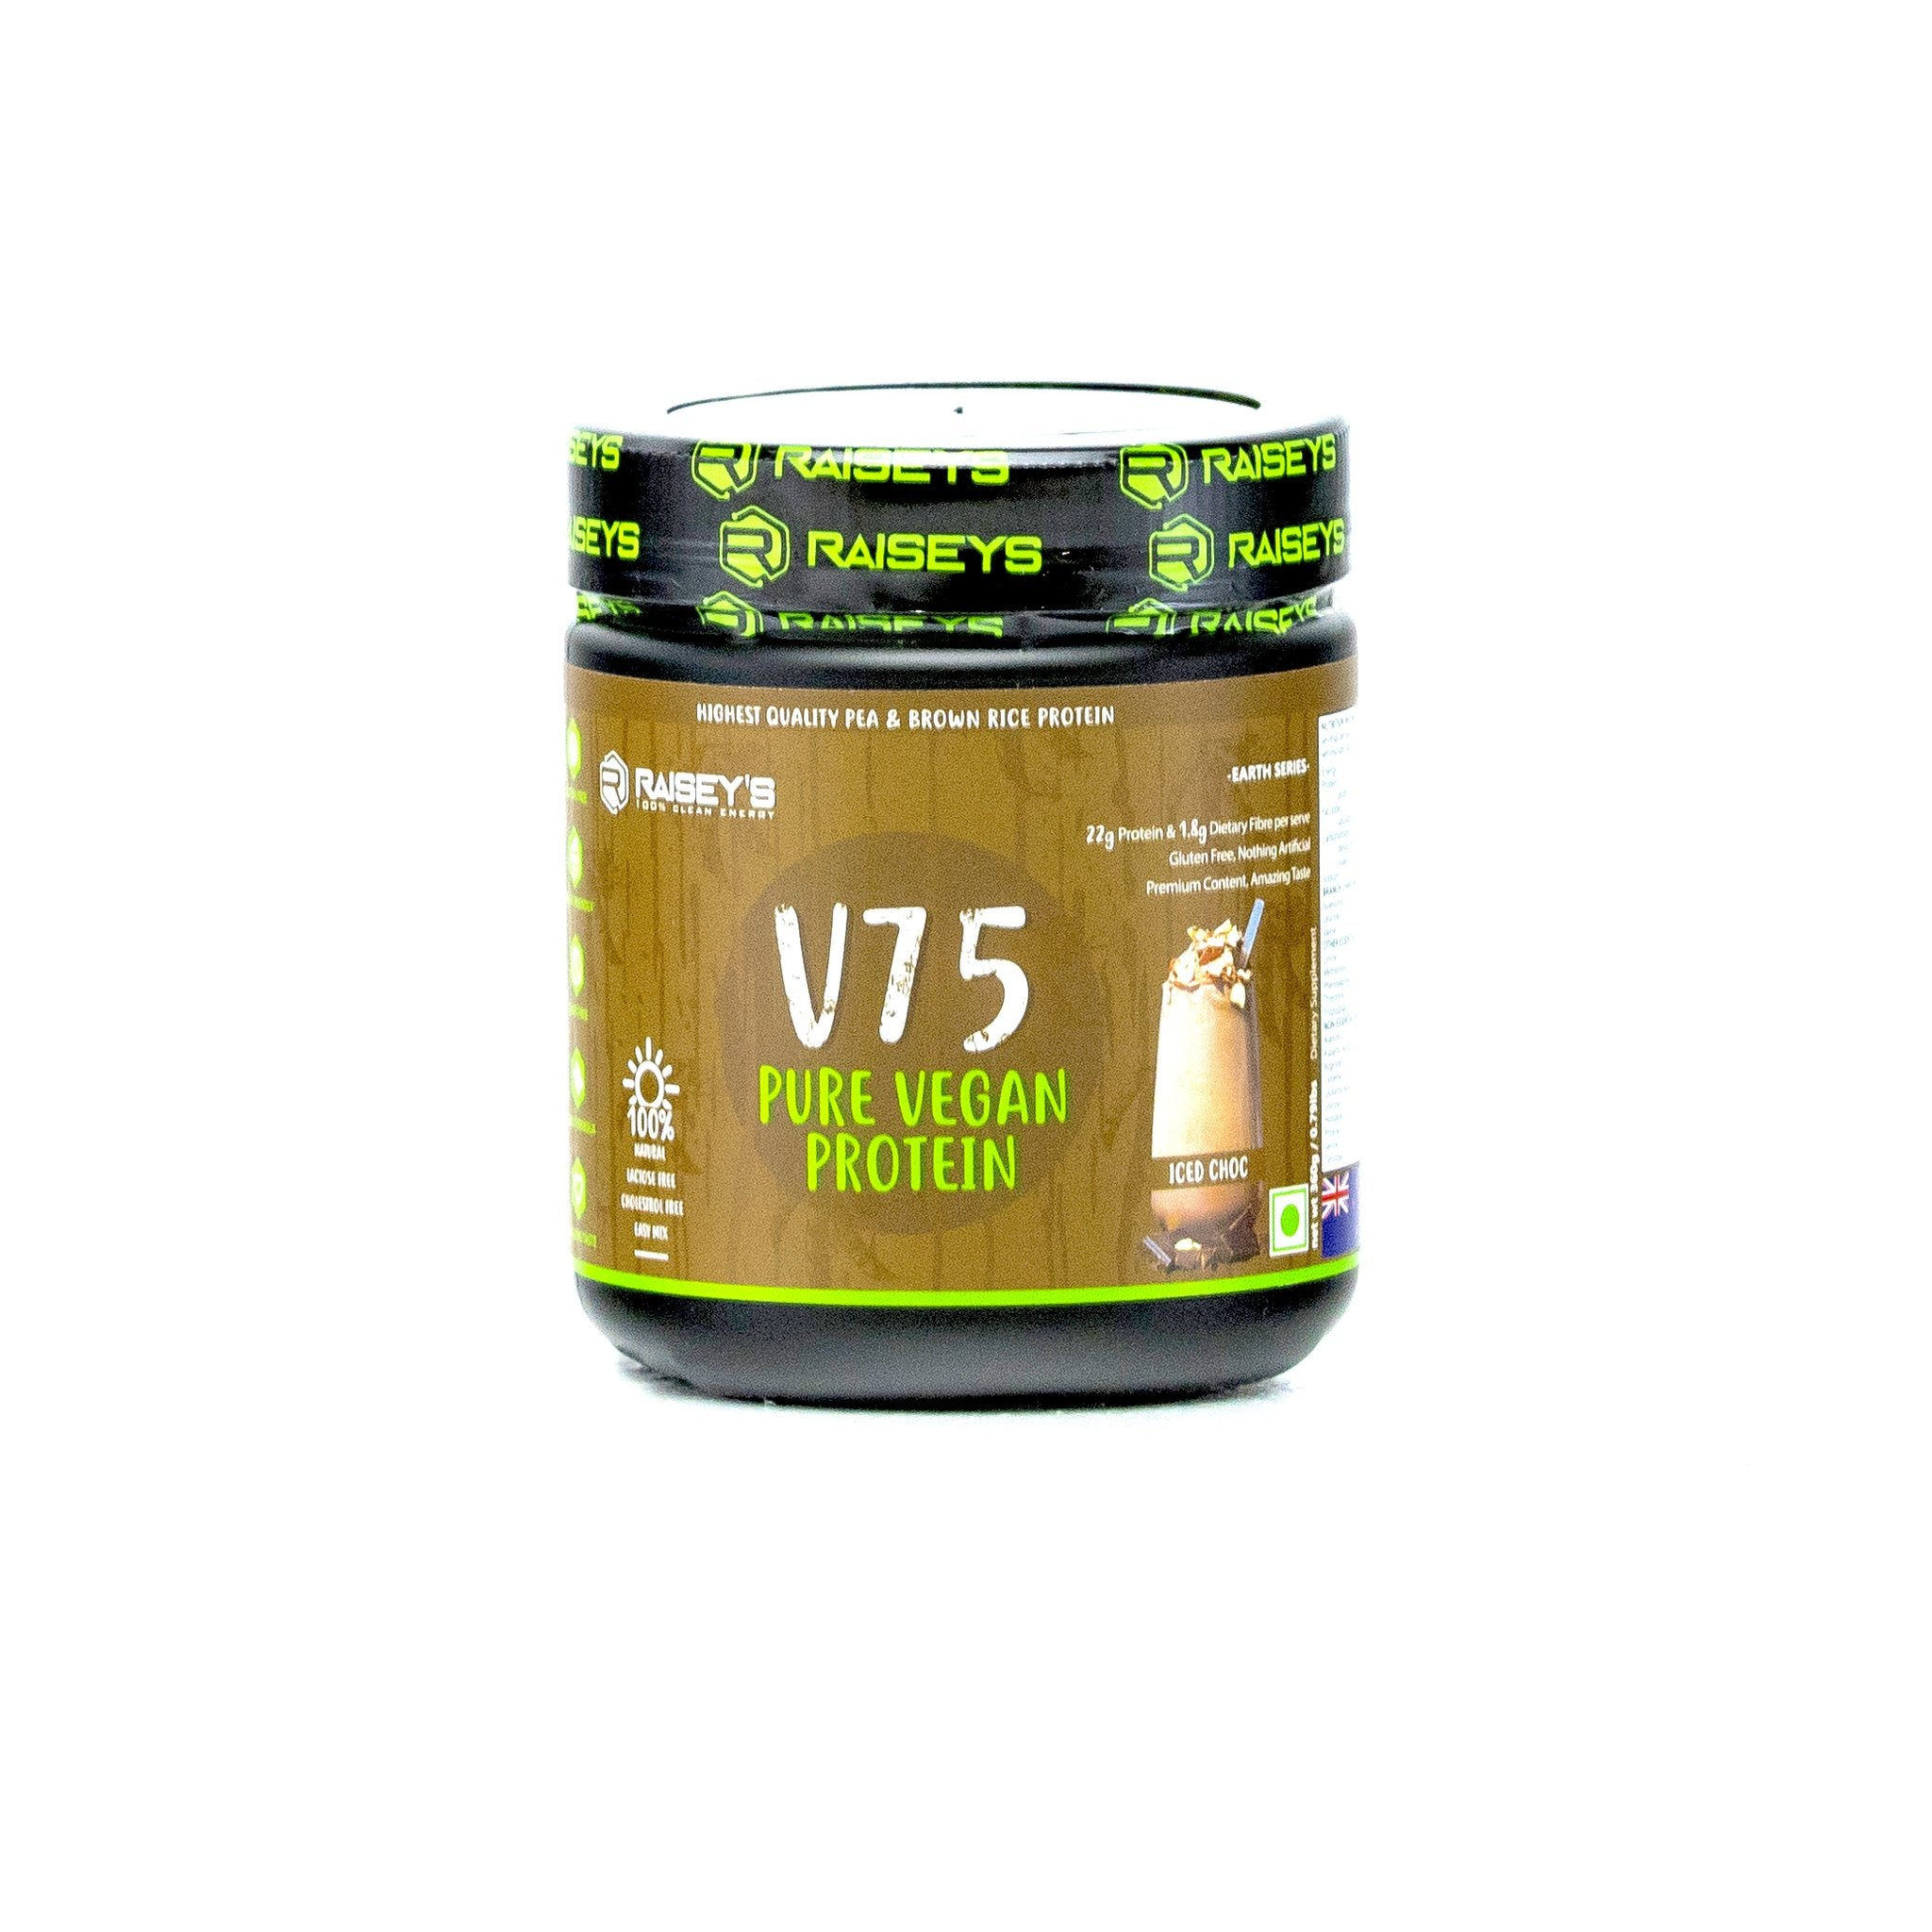 V75 VEGAN PROTEIN 360g - Pro Supplements